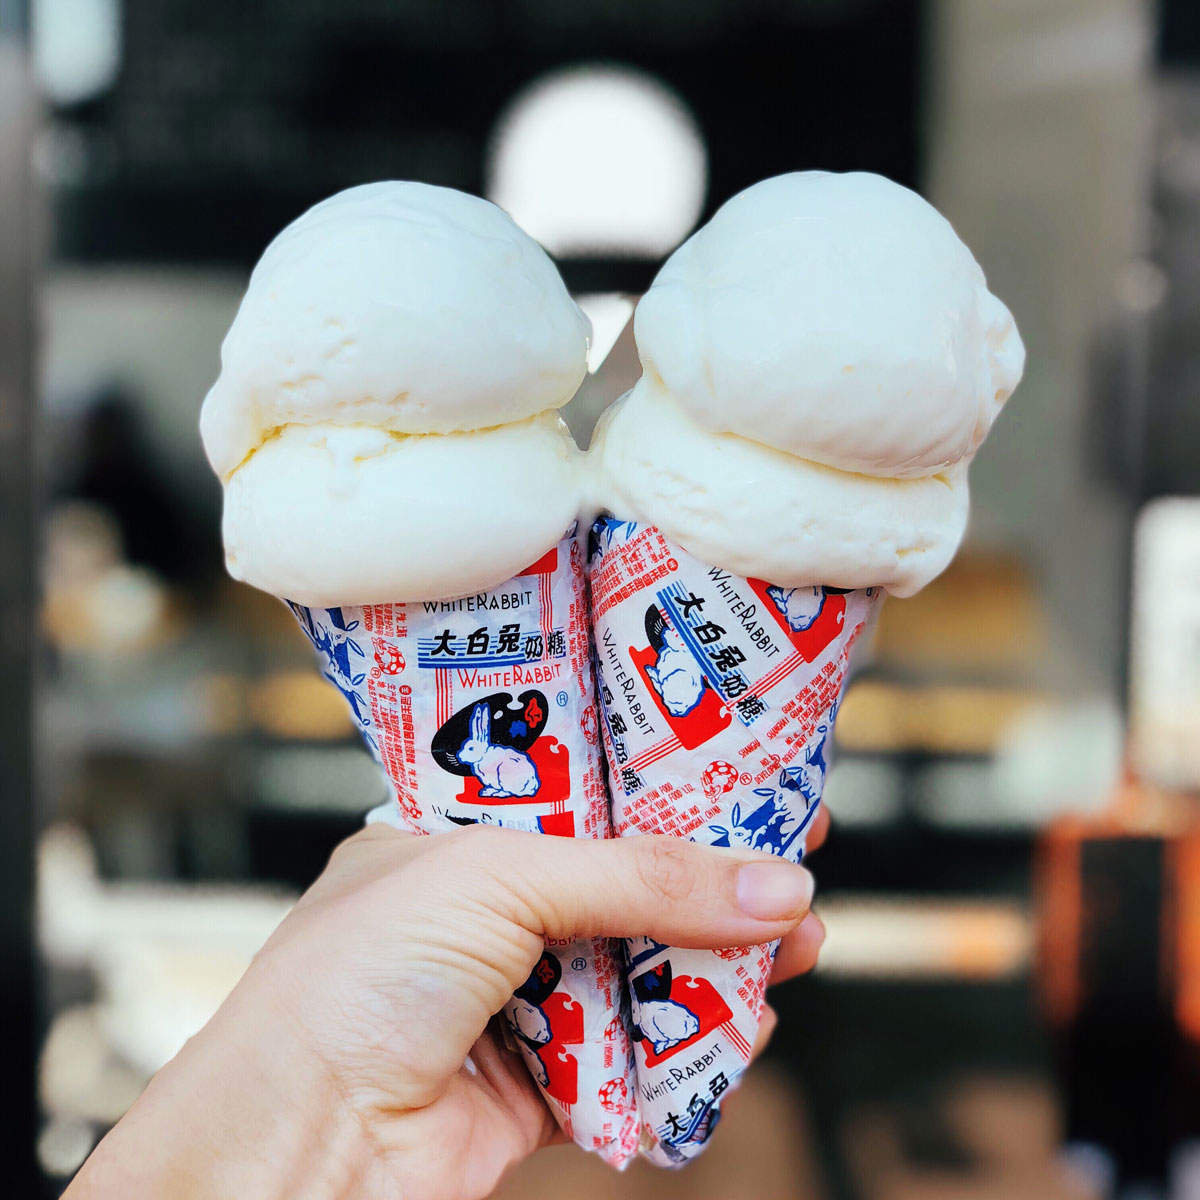 White Rabbit Ice Cream Hits L.A., and Everything Gets Crazy